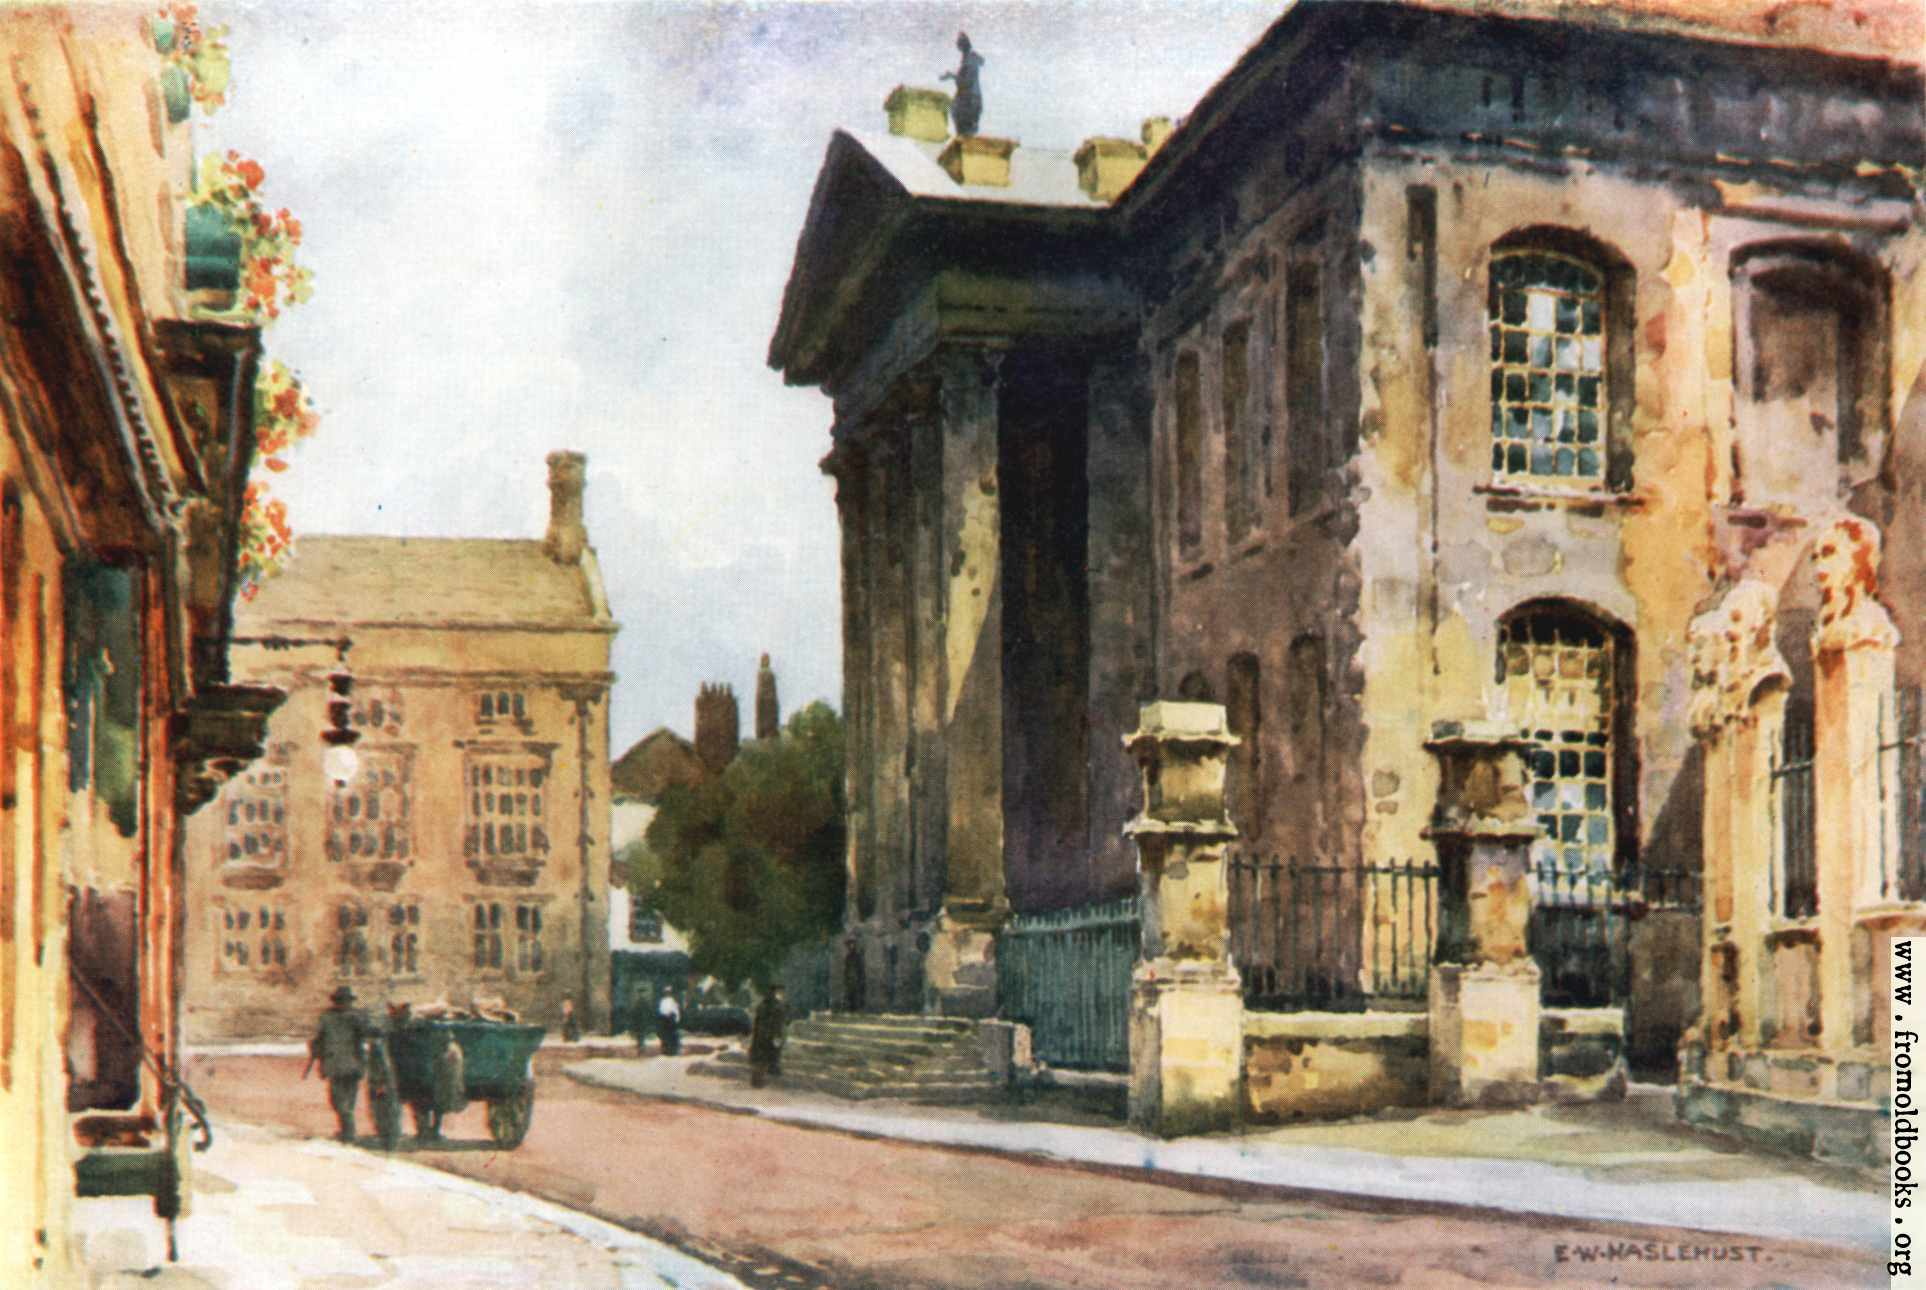 [Picture: Old Clarendon Building, Broad Street, Oxford]